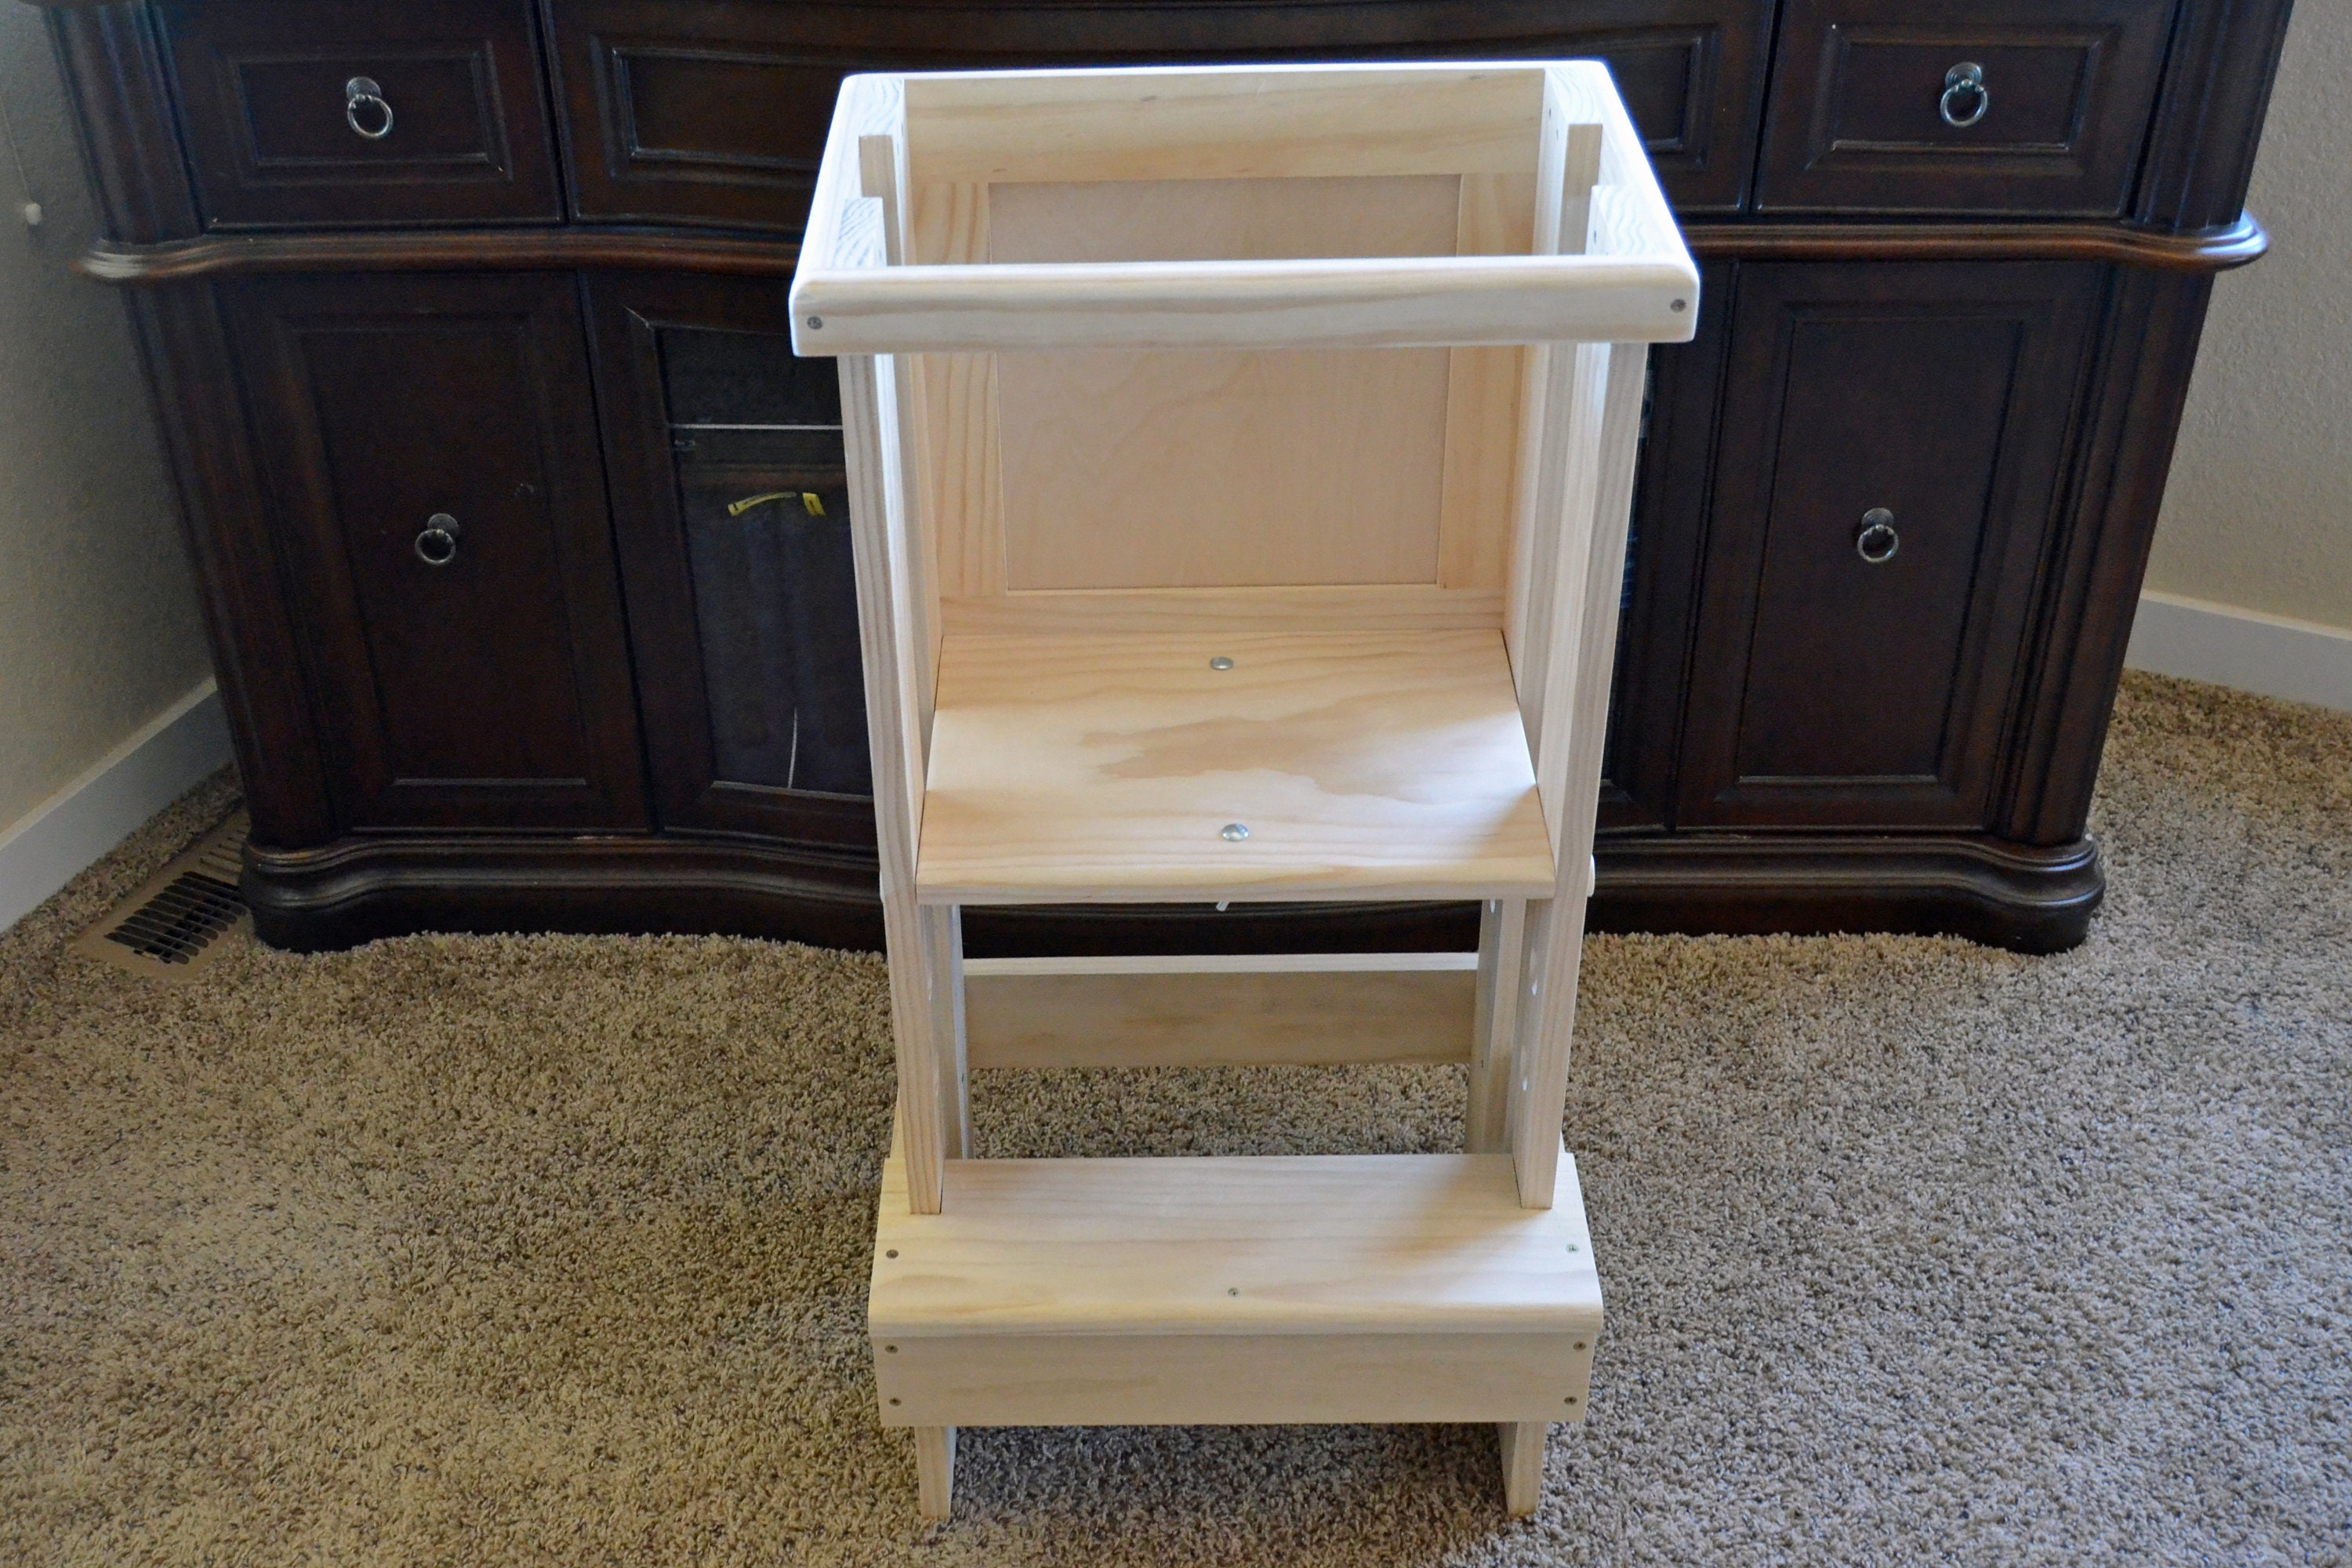 Montessori Learning Tower Unfinished kitchen Helper step stool learning tower for toddler helper tower helper stool toddler step stool